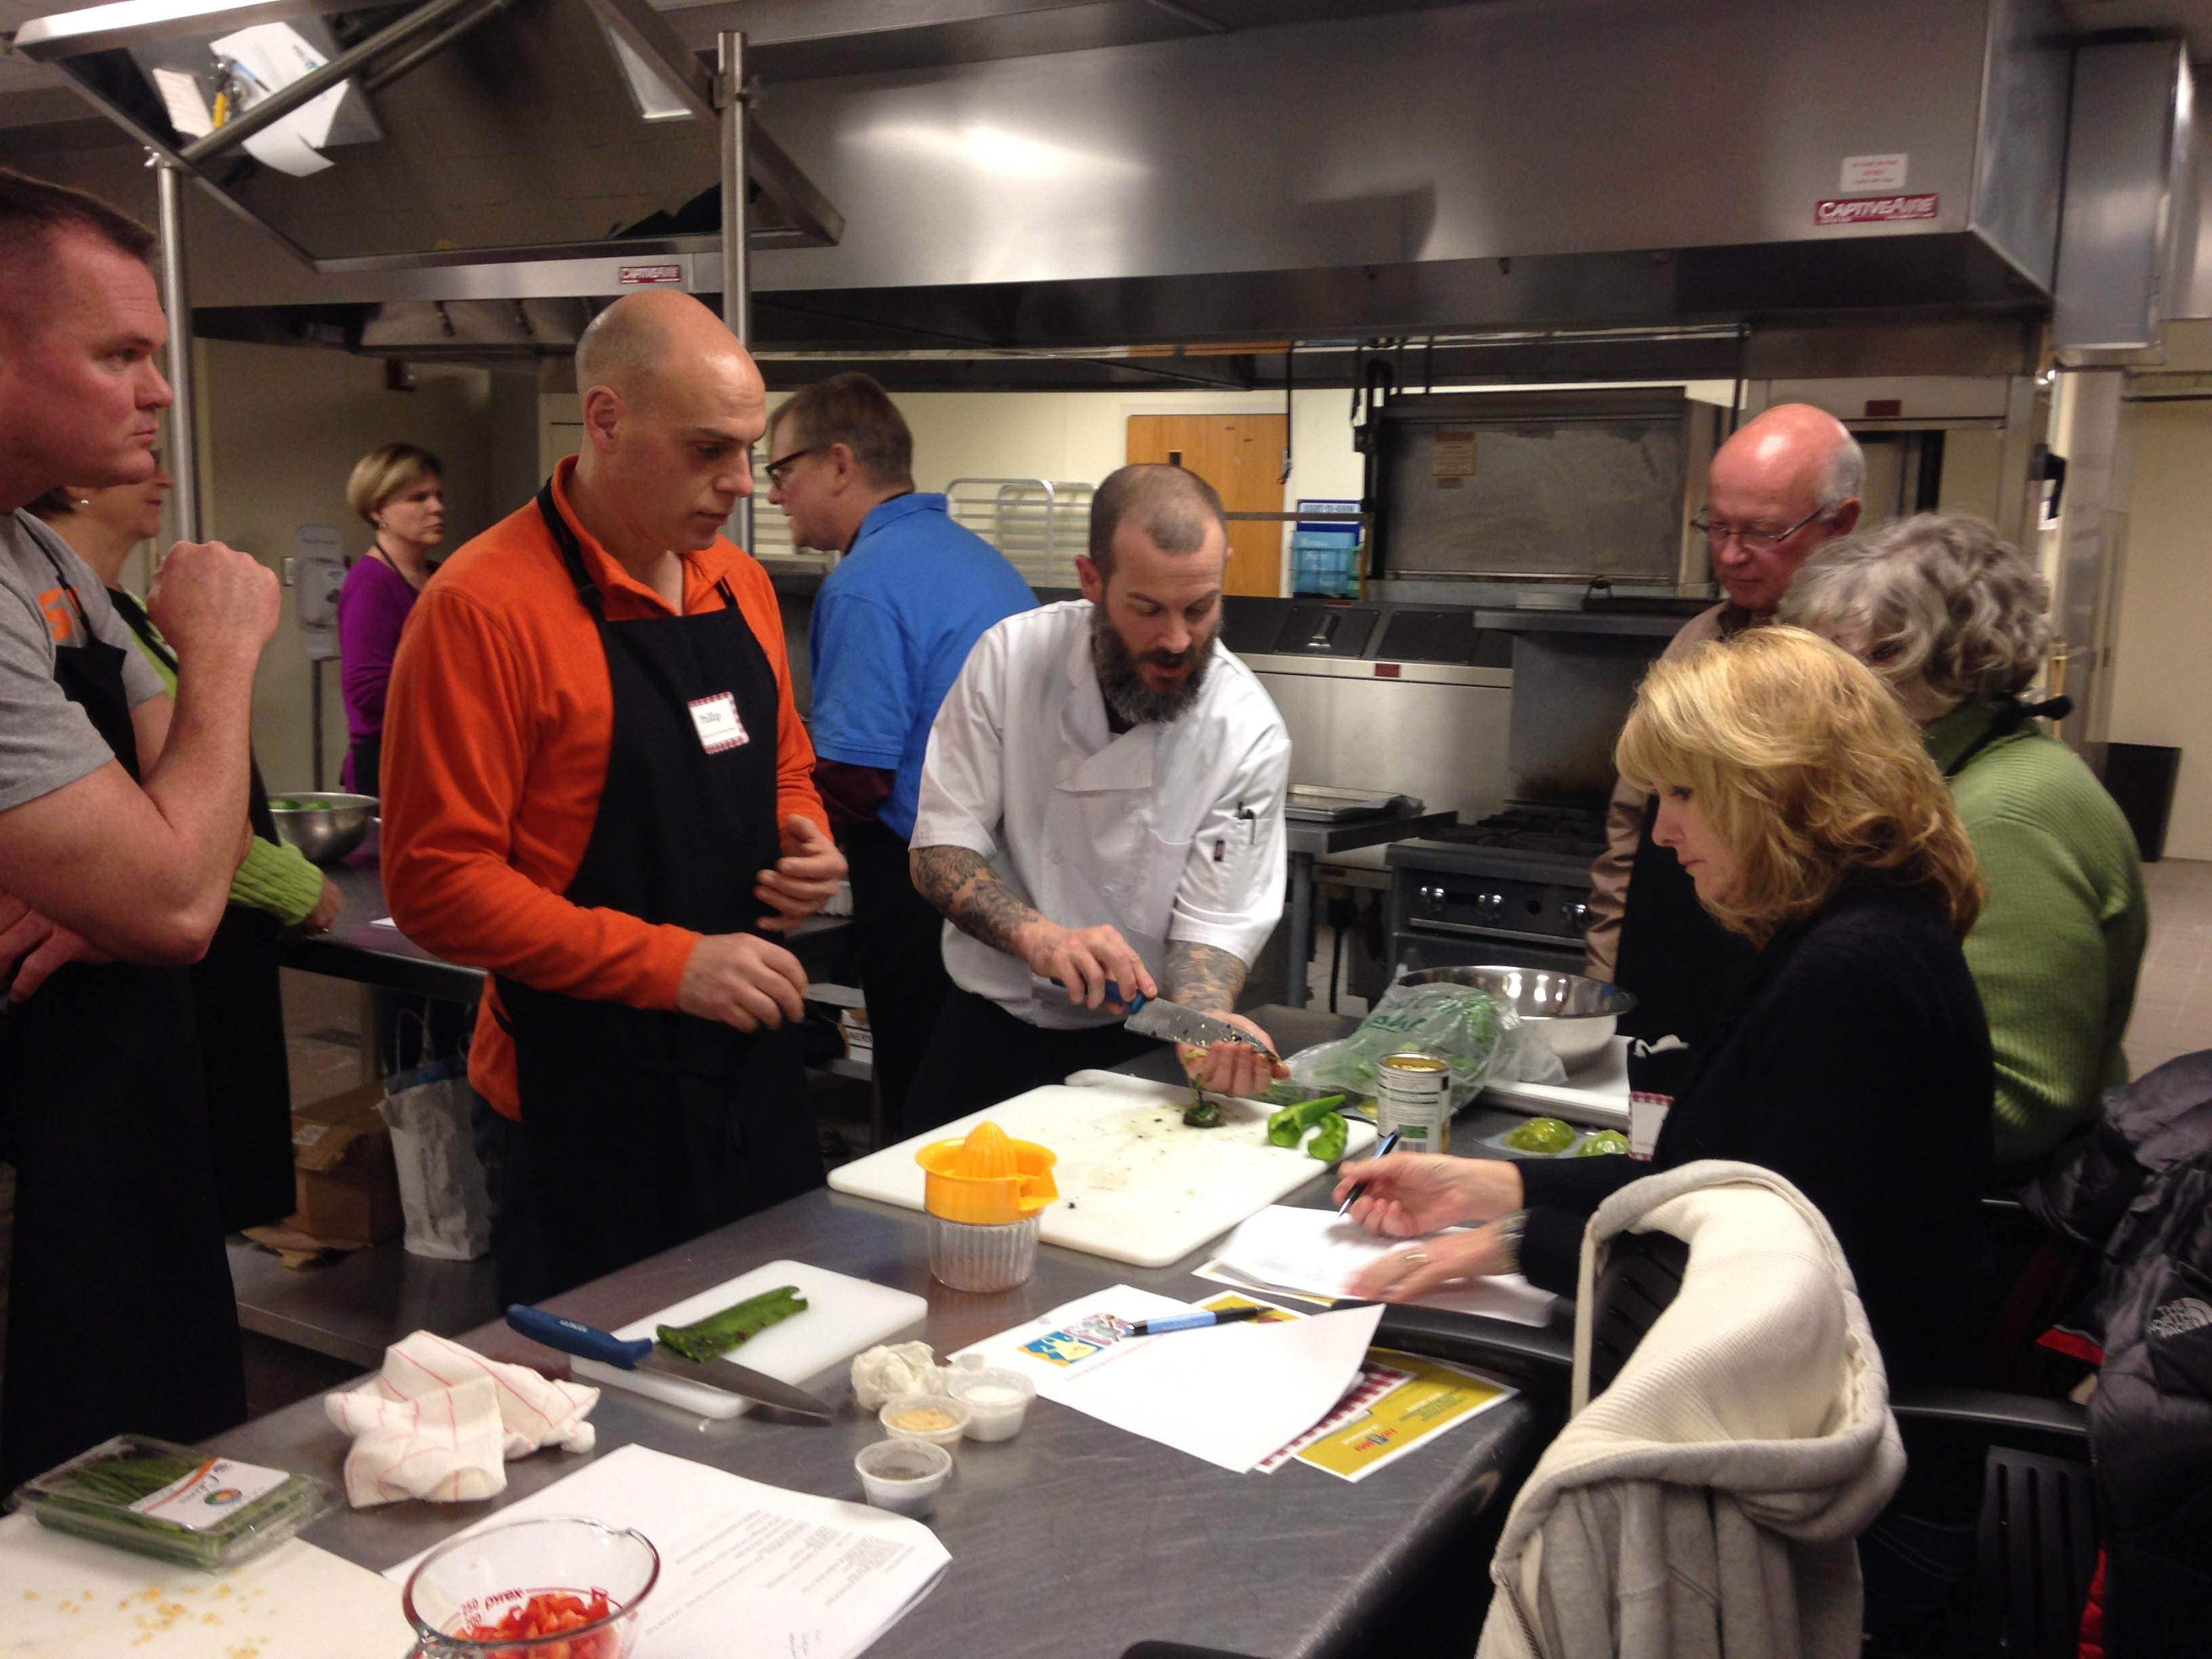 Southwest Virginia Higher Education Center Cooking Classes